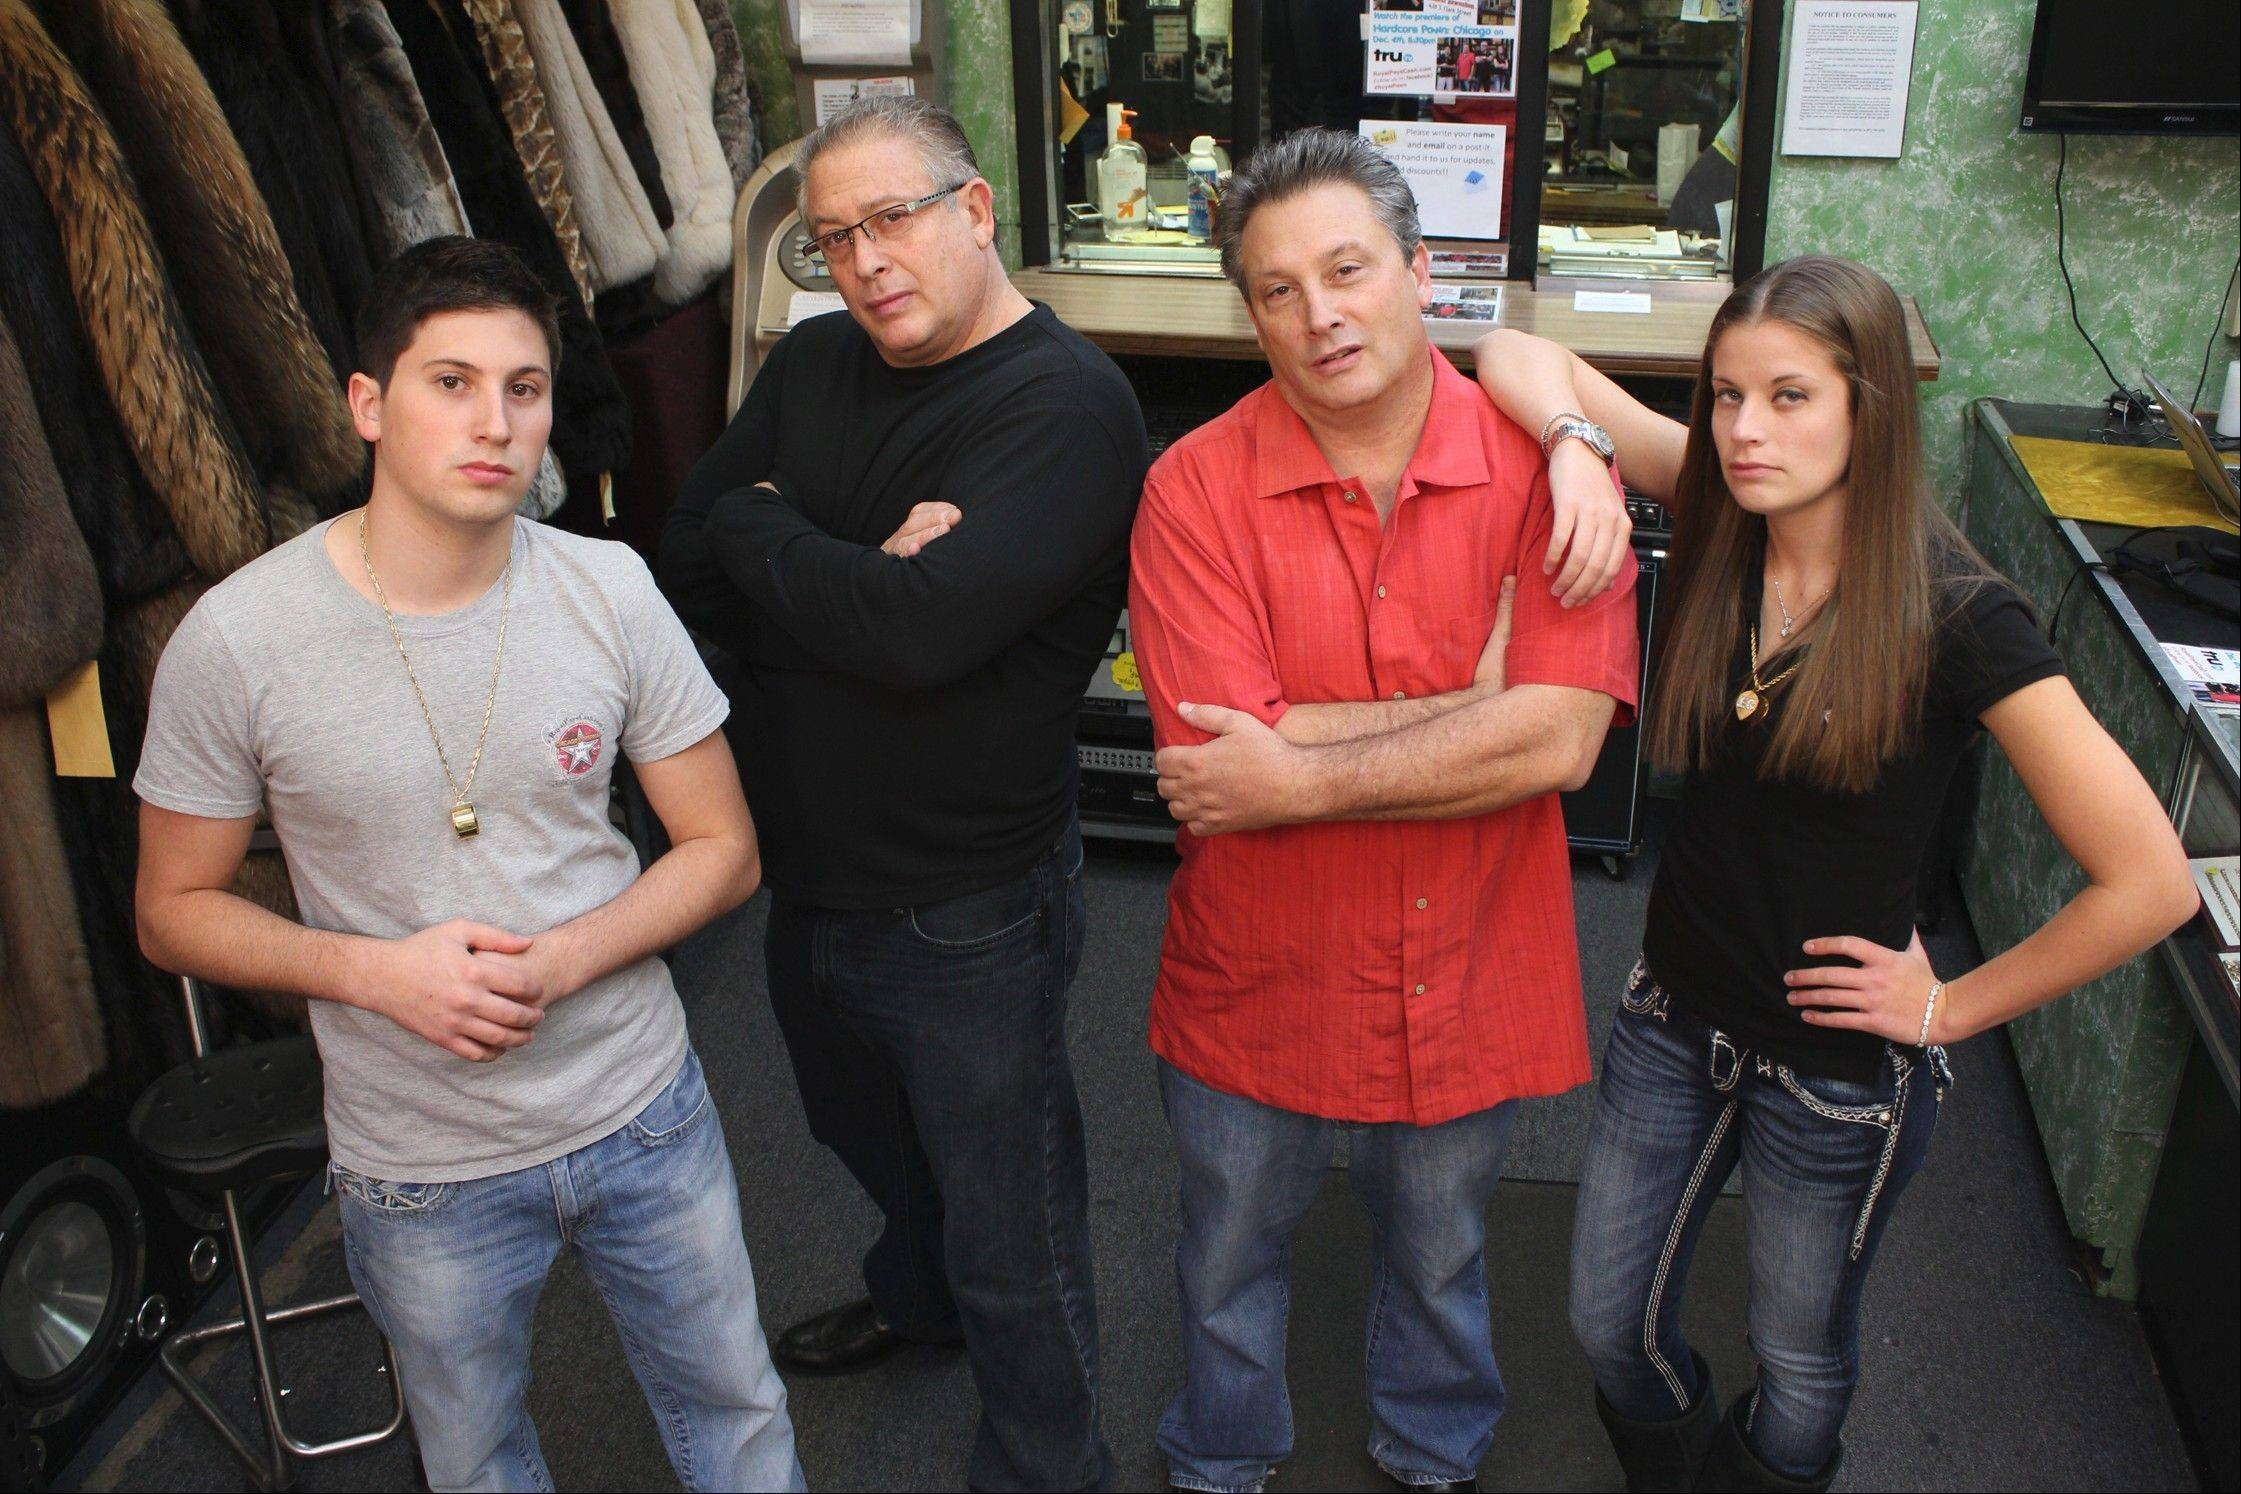 COURTESY OF MICHAEL WEBDELL/AMERICAN MASS MEDIAHardcore Pawn: Chicago stars include Nathan Cohen (Wayne's Son), from left, co-owner Randy Cohen, co-owner Wayne Cohen and Elyse Cohen (Randy's daughter).